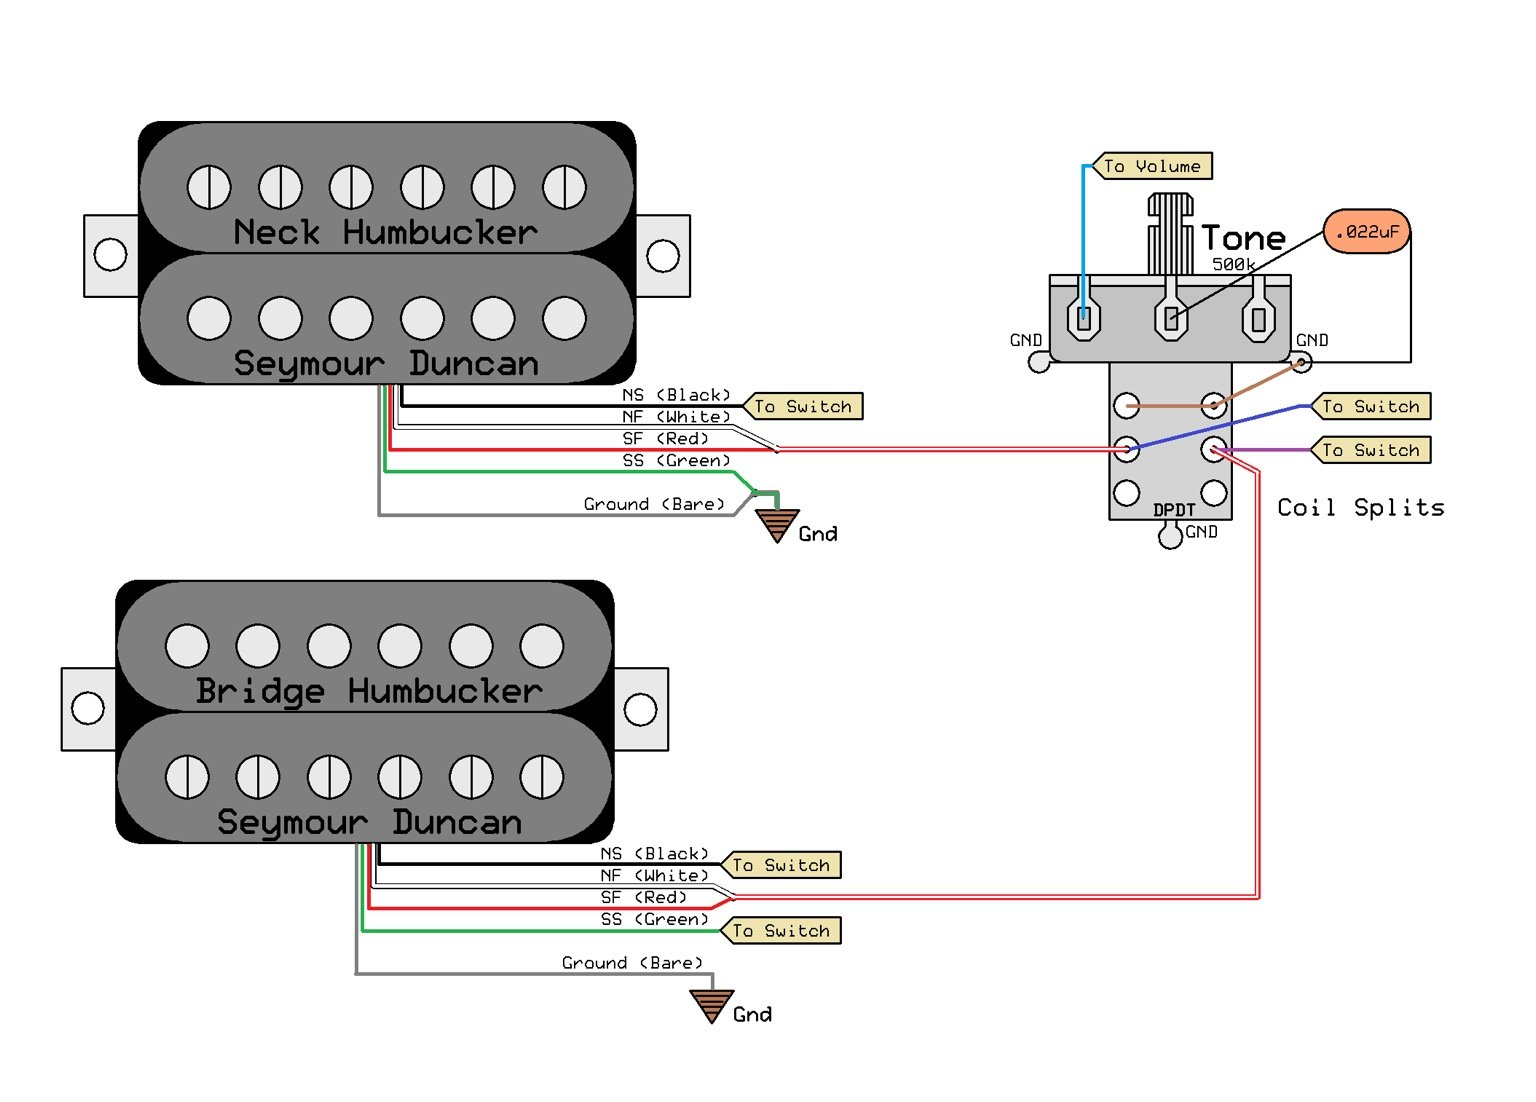 Wierd Wiring Question Diagram 2 Humbuckers 5way Lever Switch 1 Volume Tone 06 As You Mentioned Before Youll Really Only Want To Use This In 5 Im Honestly Not Sure What It Will Do The Other Positions Because For